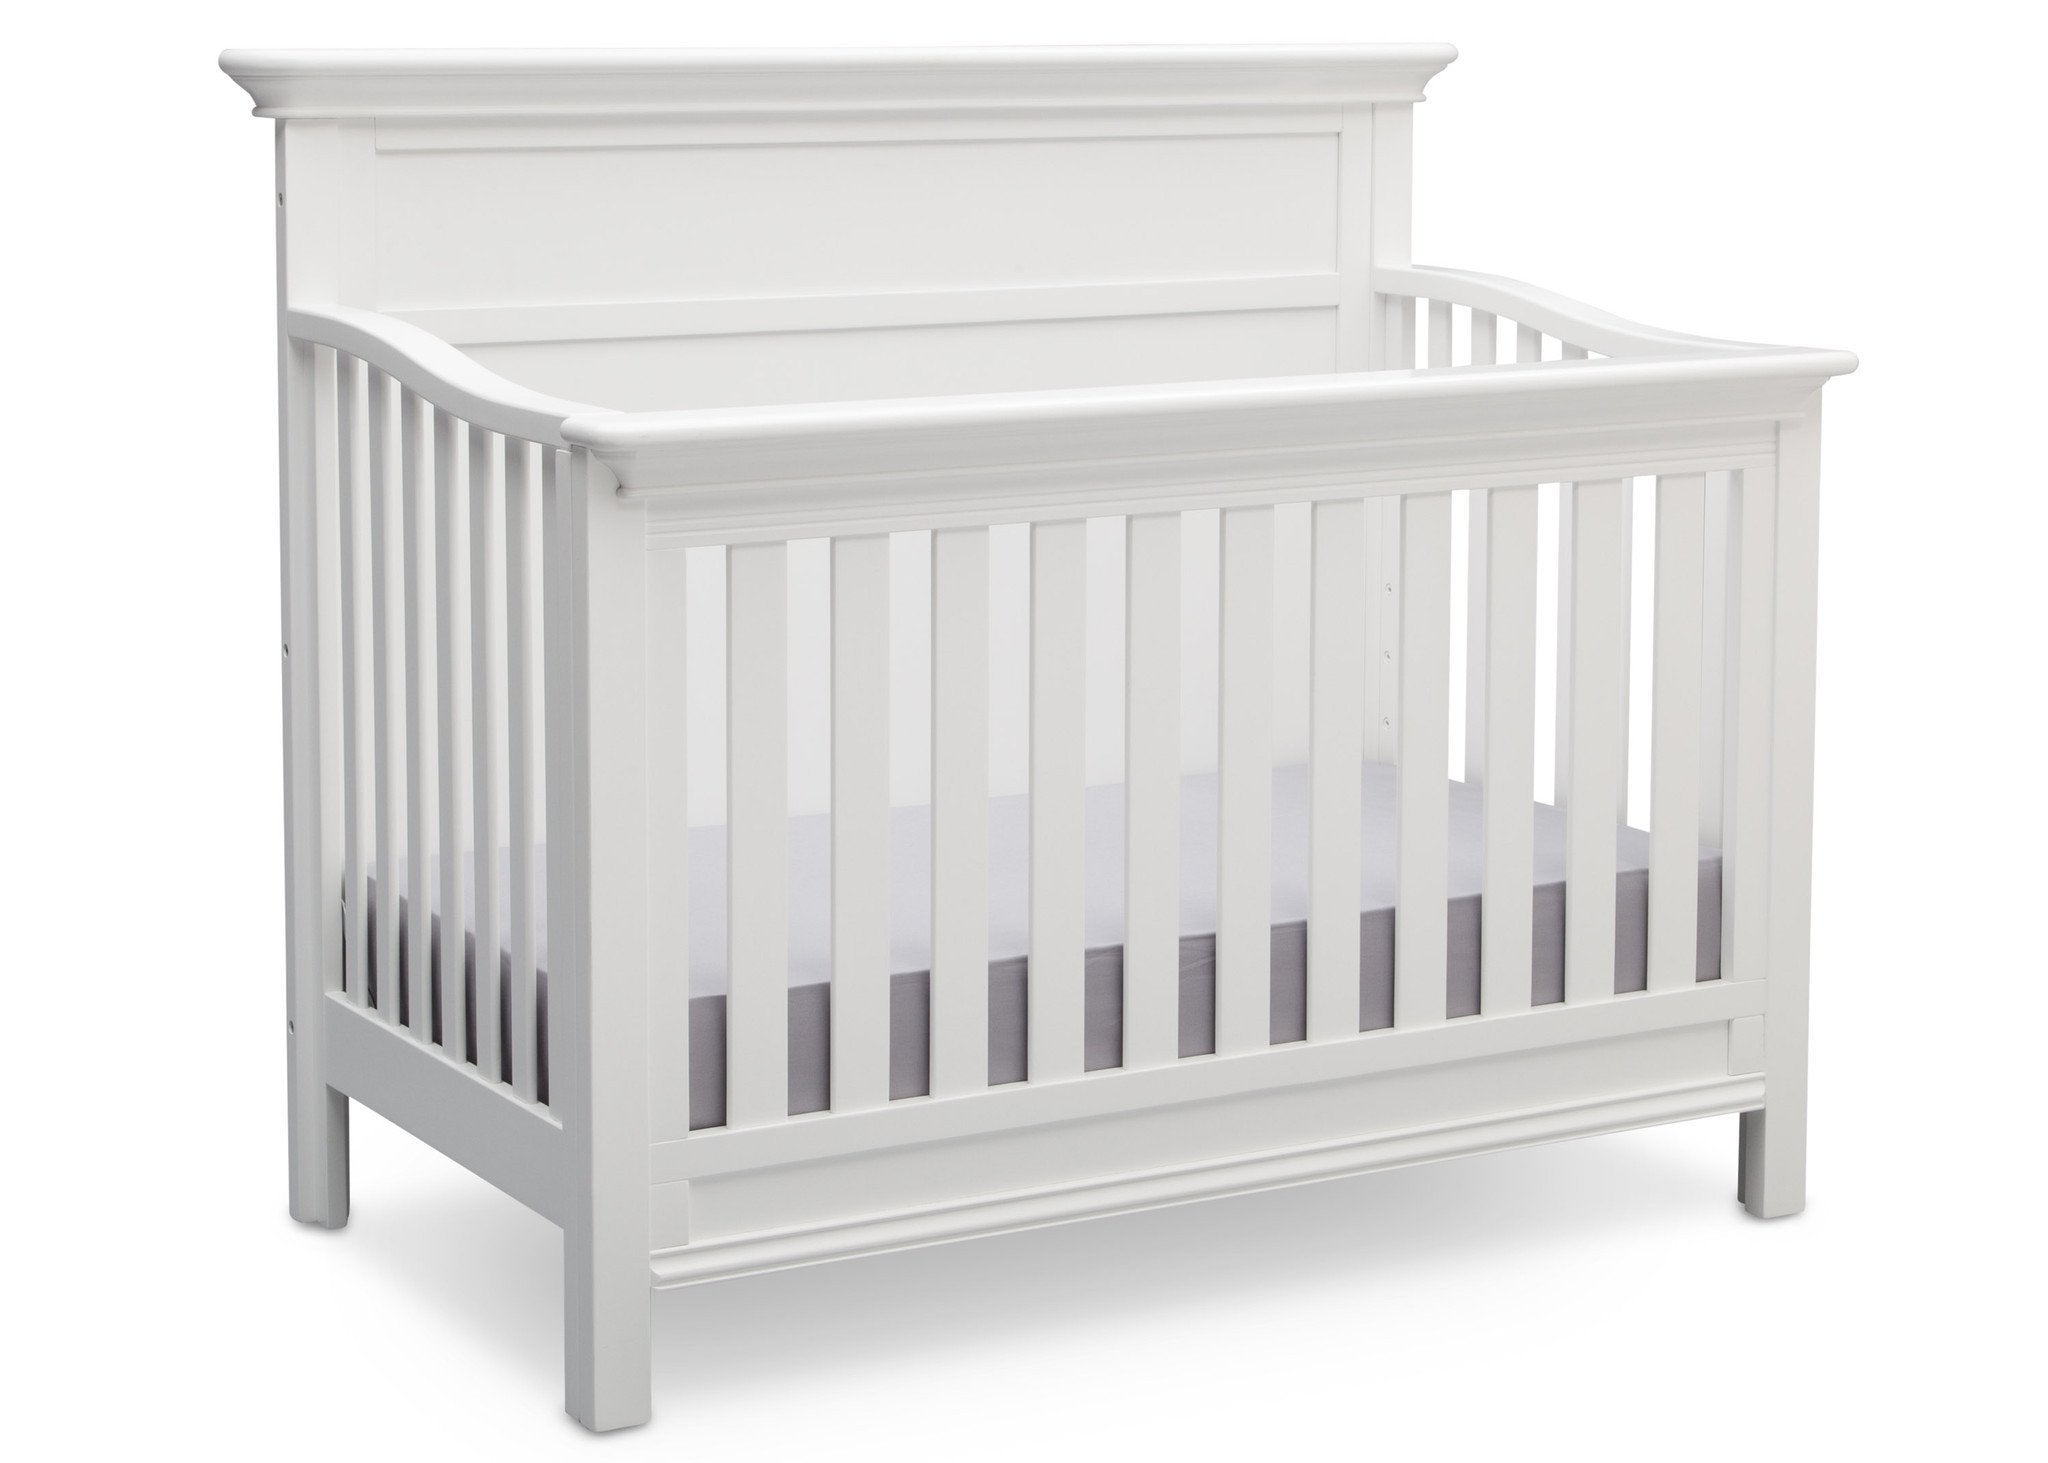 Serta Bianca White (130) Fairmount 4-in-1 Crib, Side View with Crib Conversion a4a